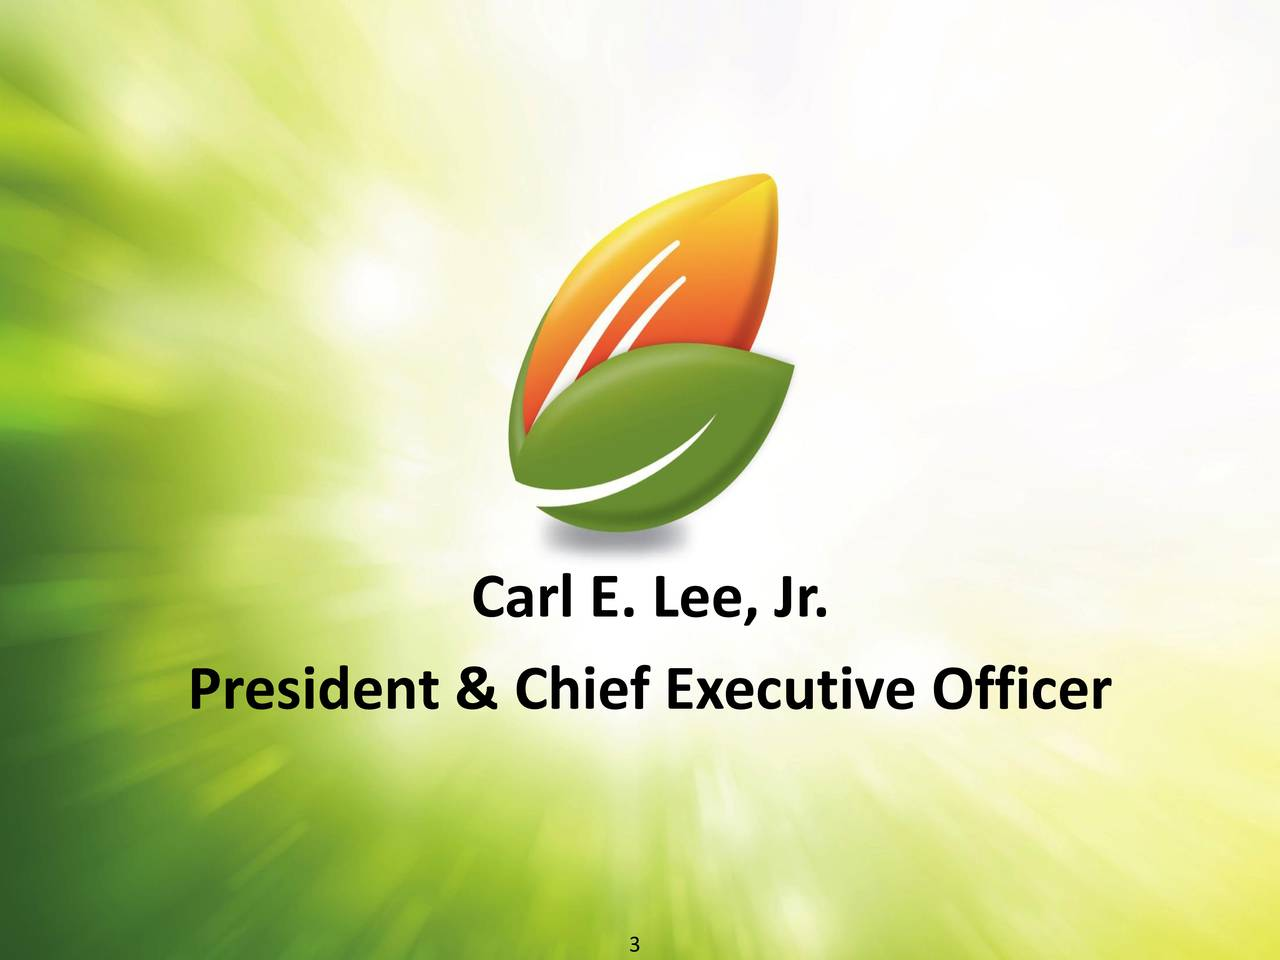 President & Chief Executive Officer